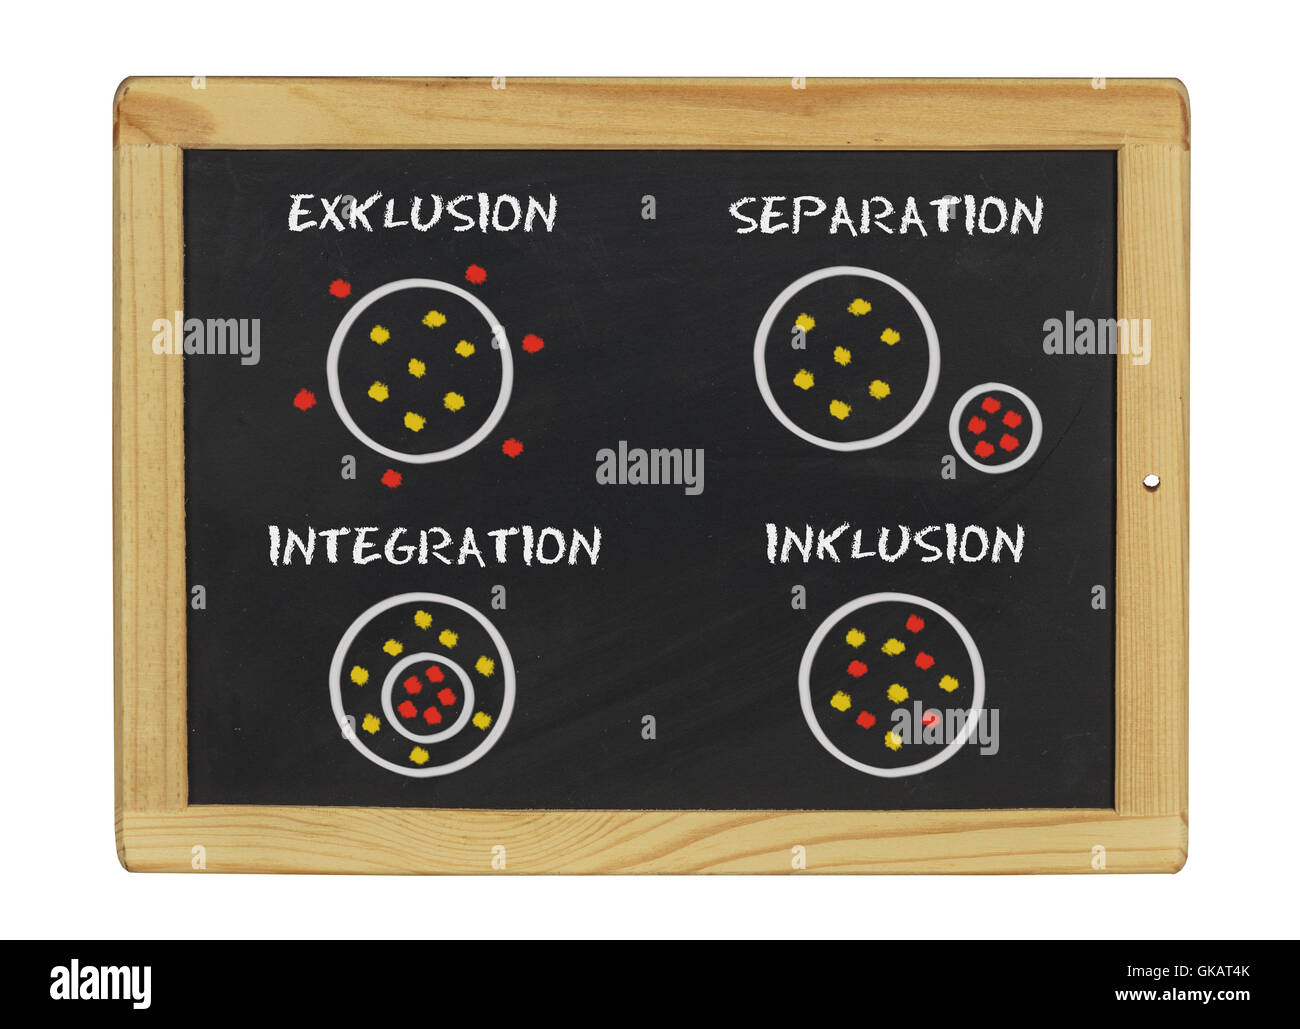 inclusion - integration - exclusion - separation - Stock Image